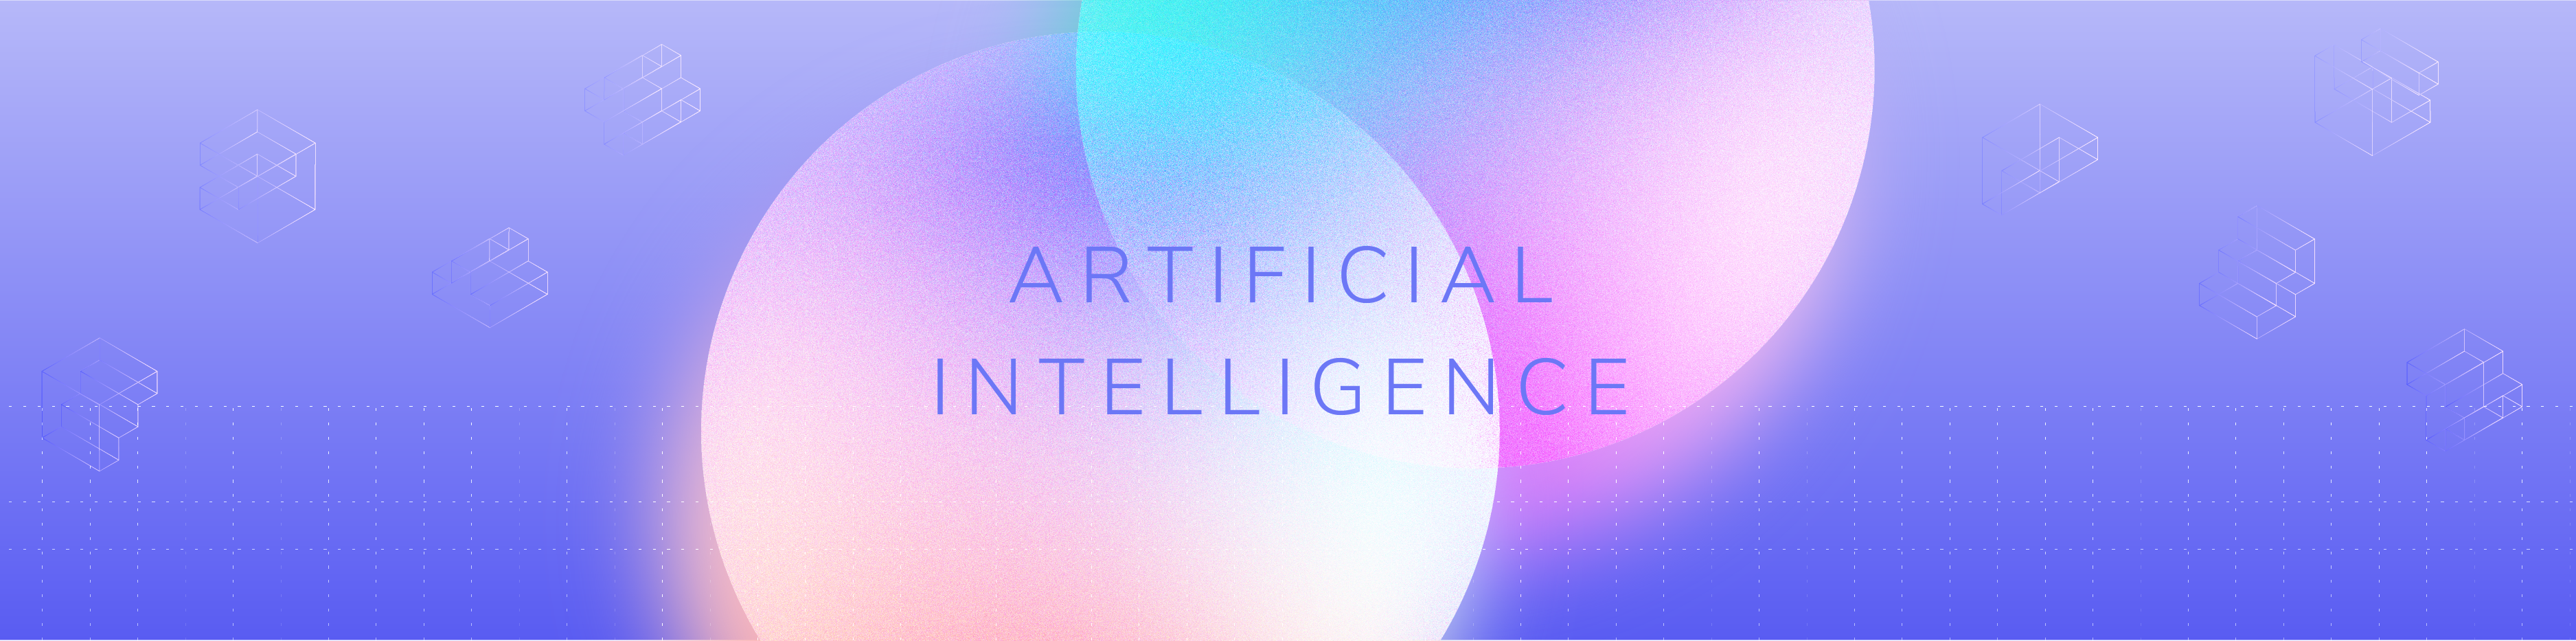 """Image with purple background, 2 discs and the words """"Artificial Intelligence"""""""